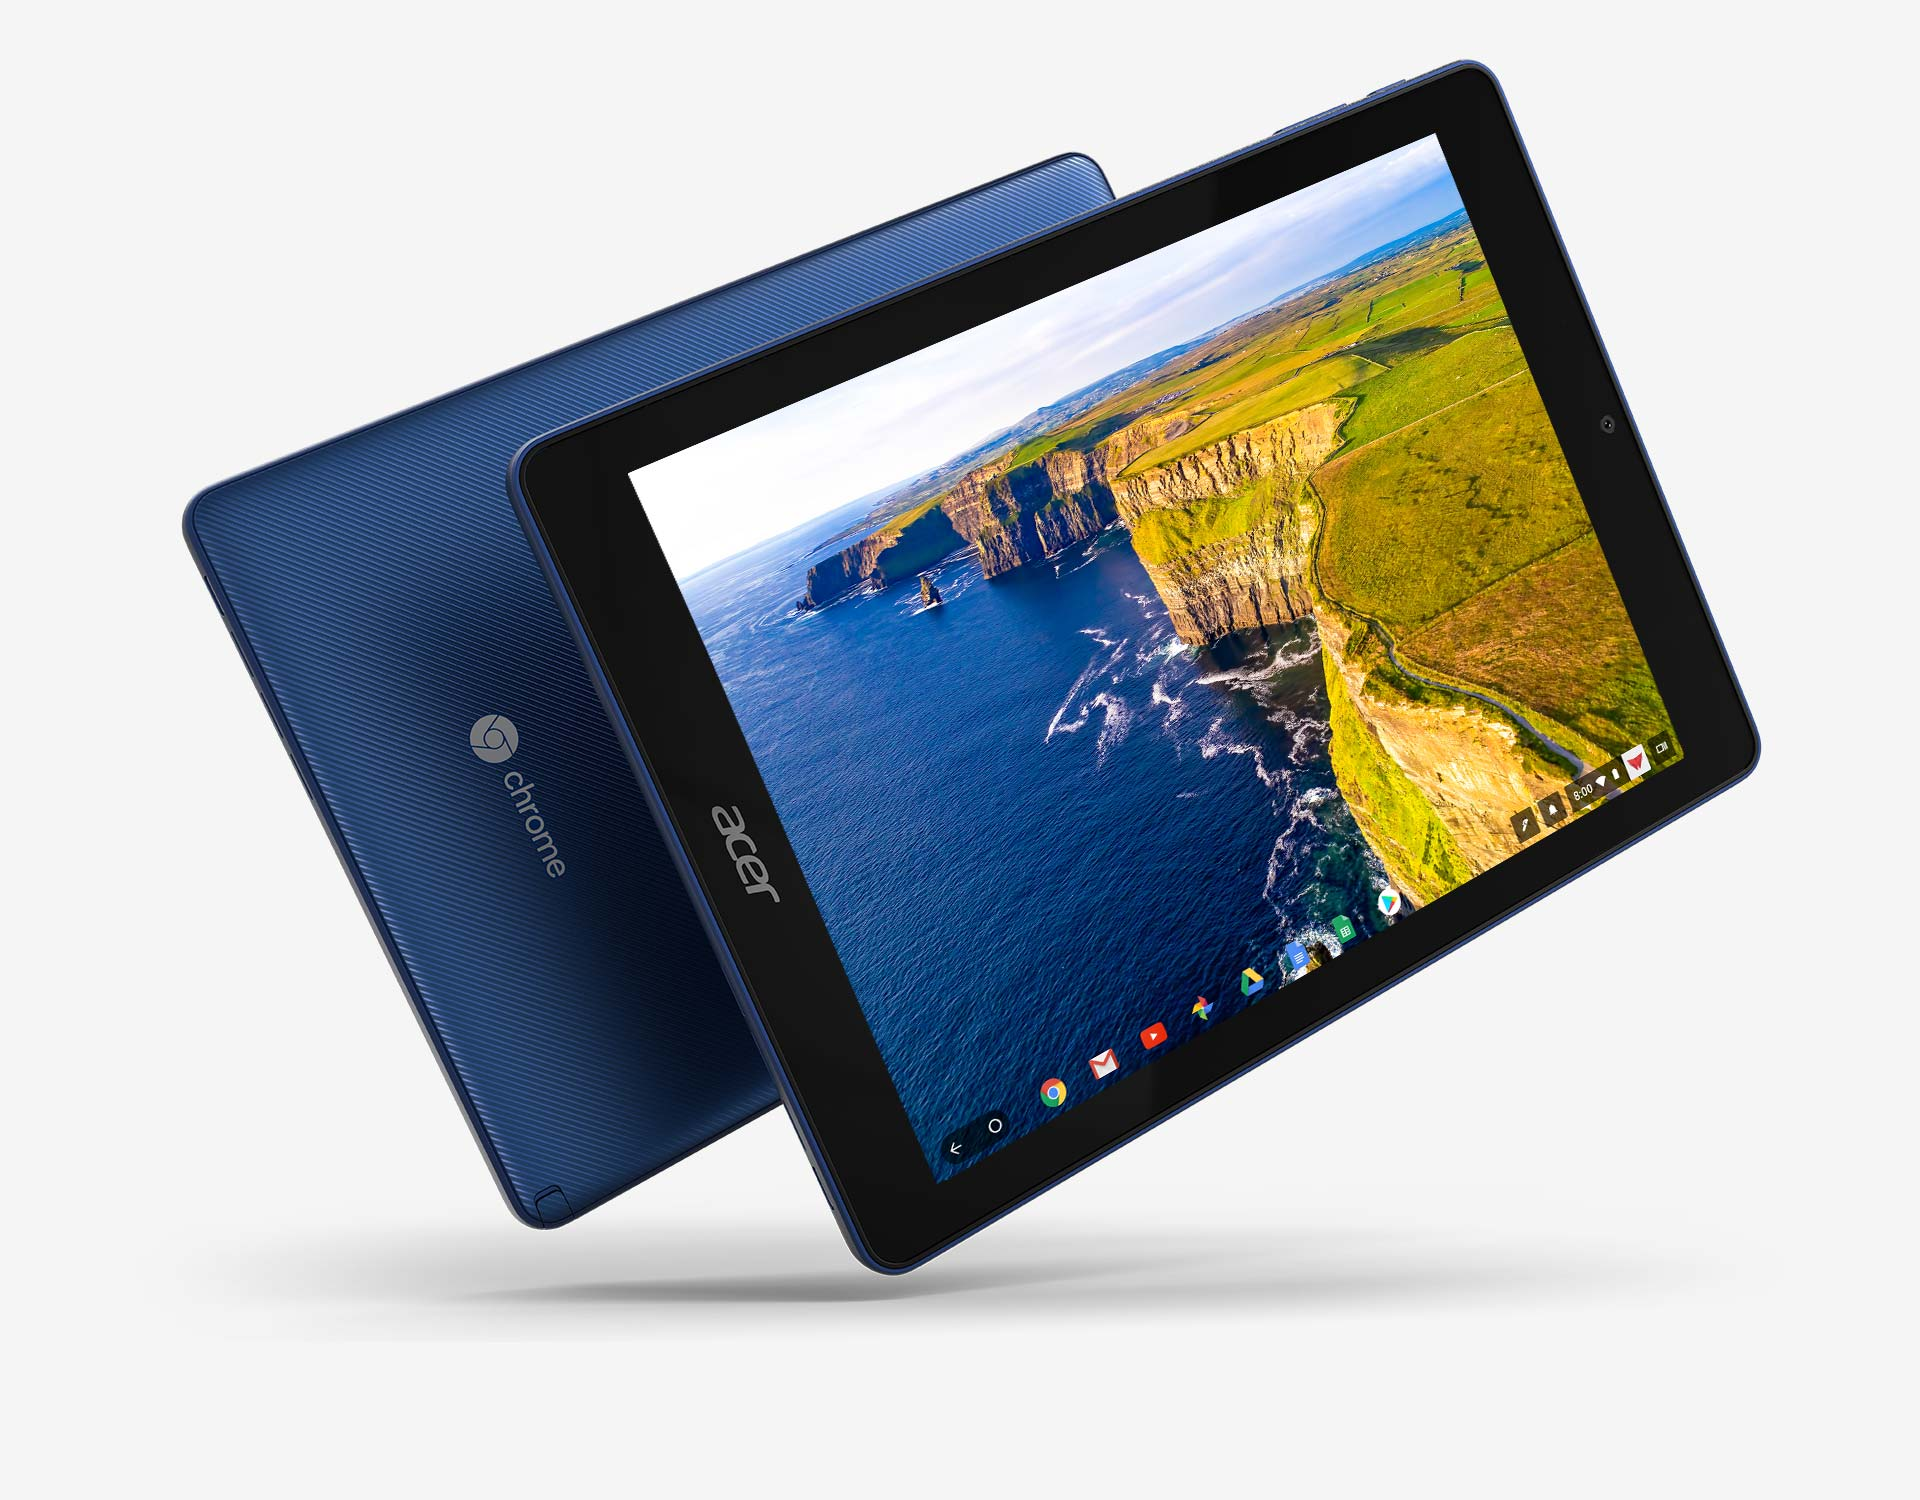 Acer Chromebook Tab 10 user manual available, indicating direct sales soon  – About Chromebooks